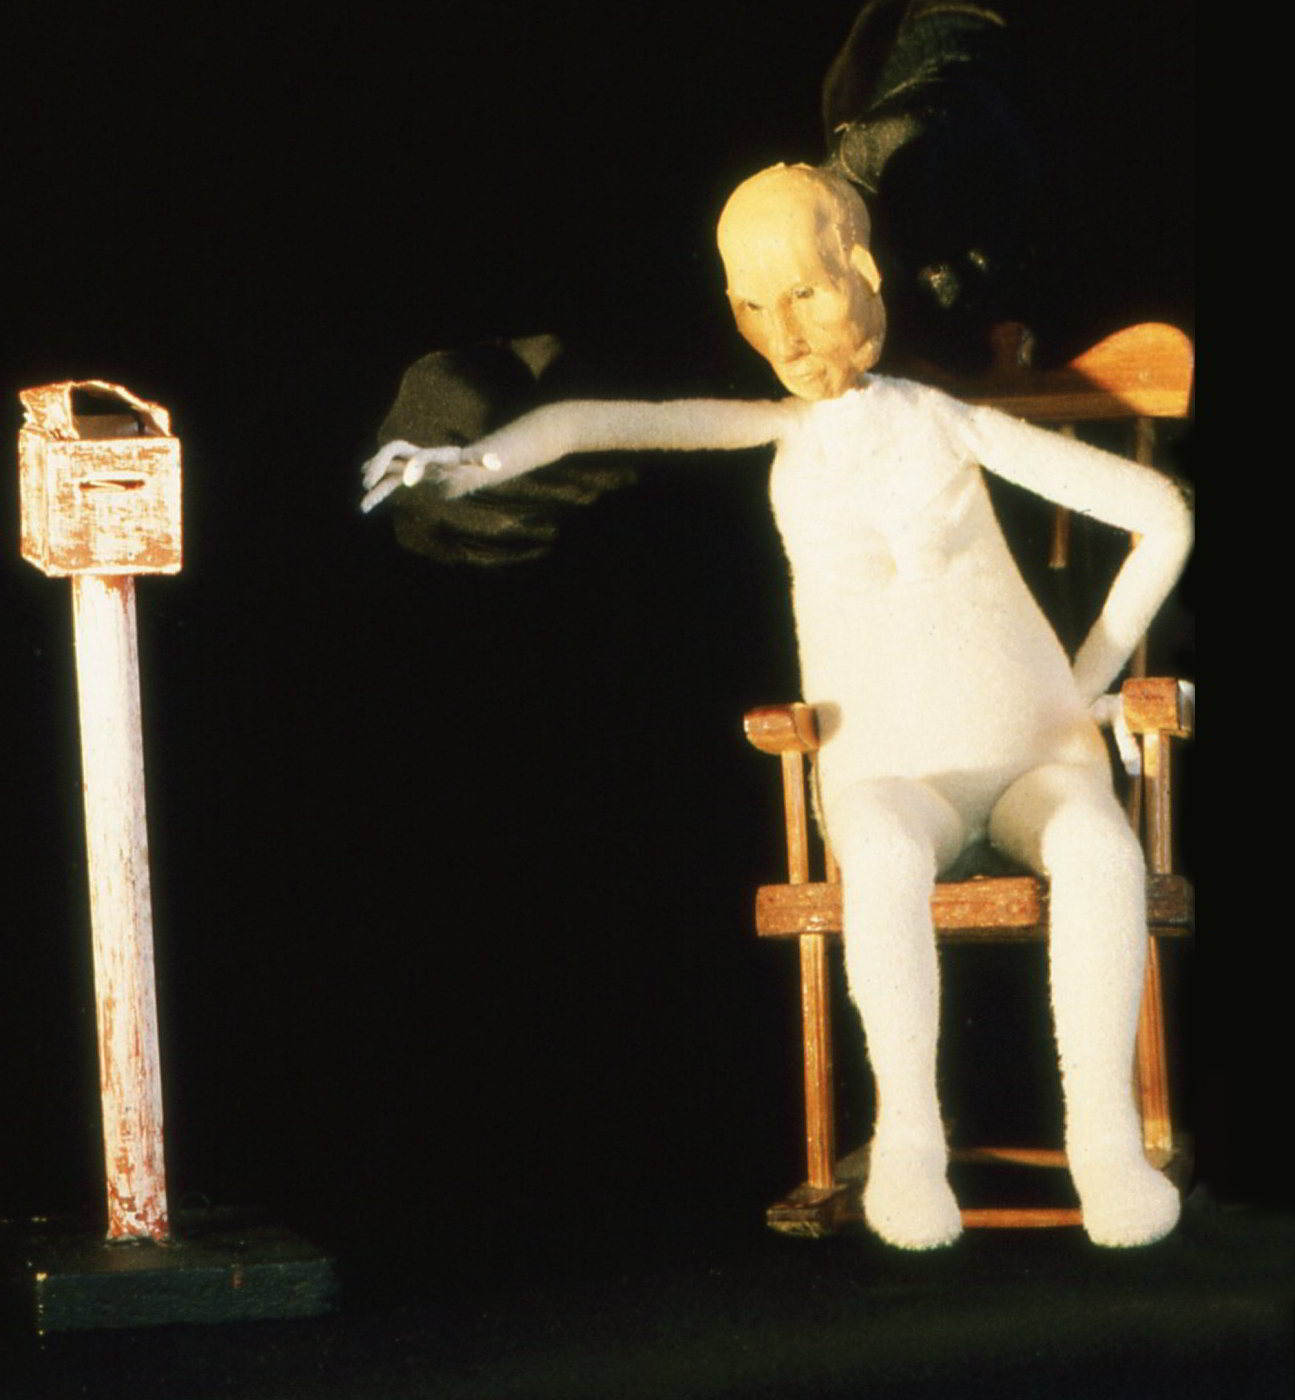 Puppet figure of old woman stretching from rocking chair to letter box